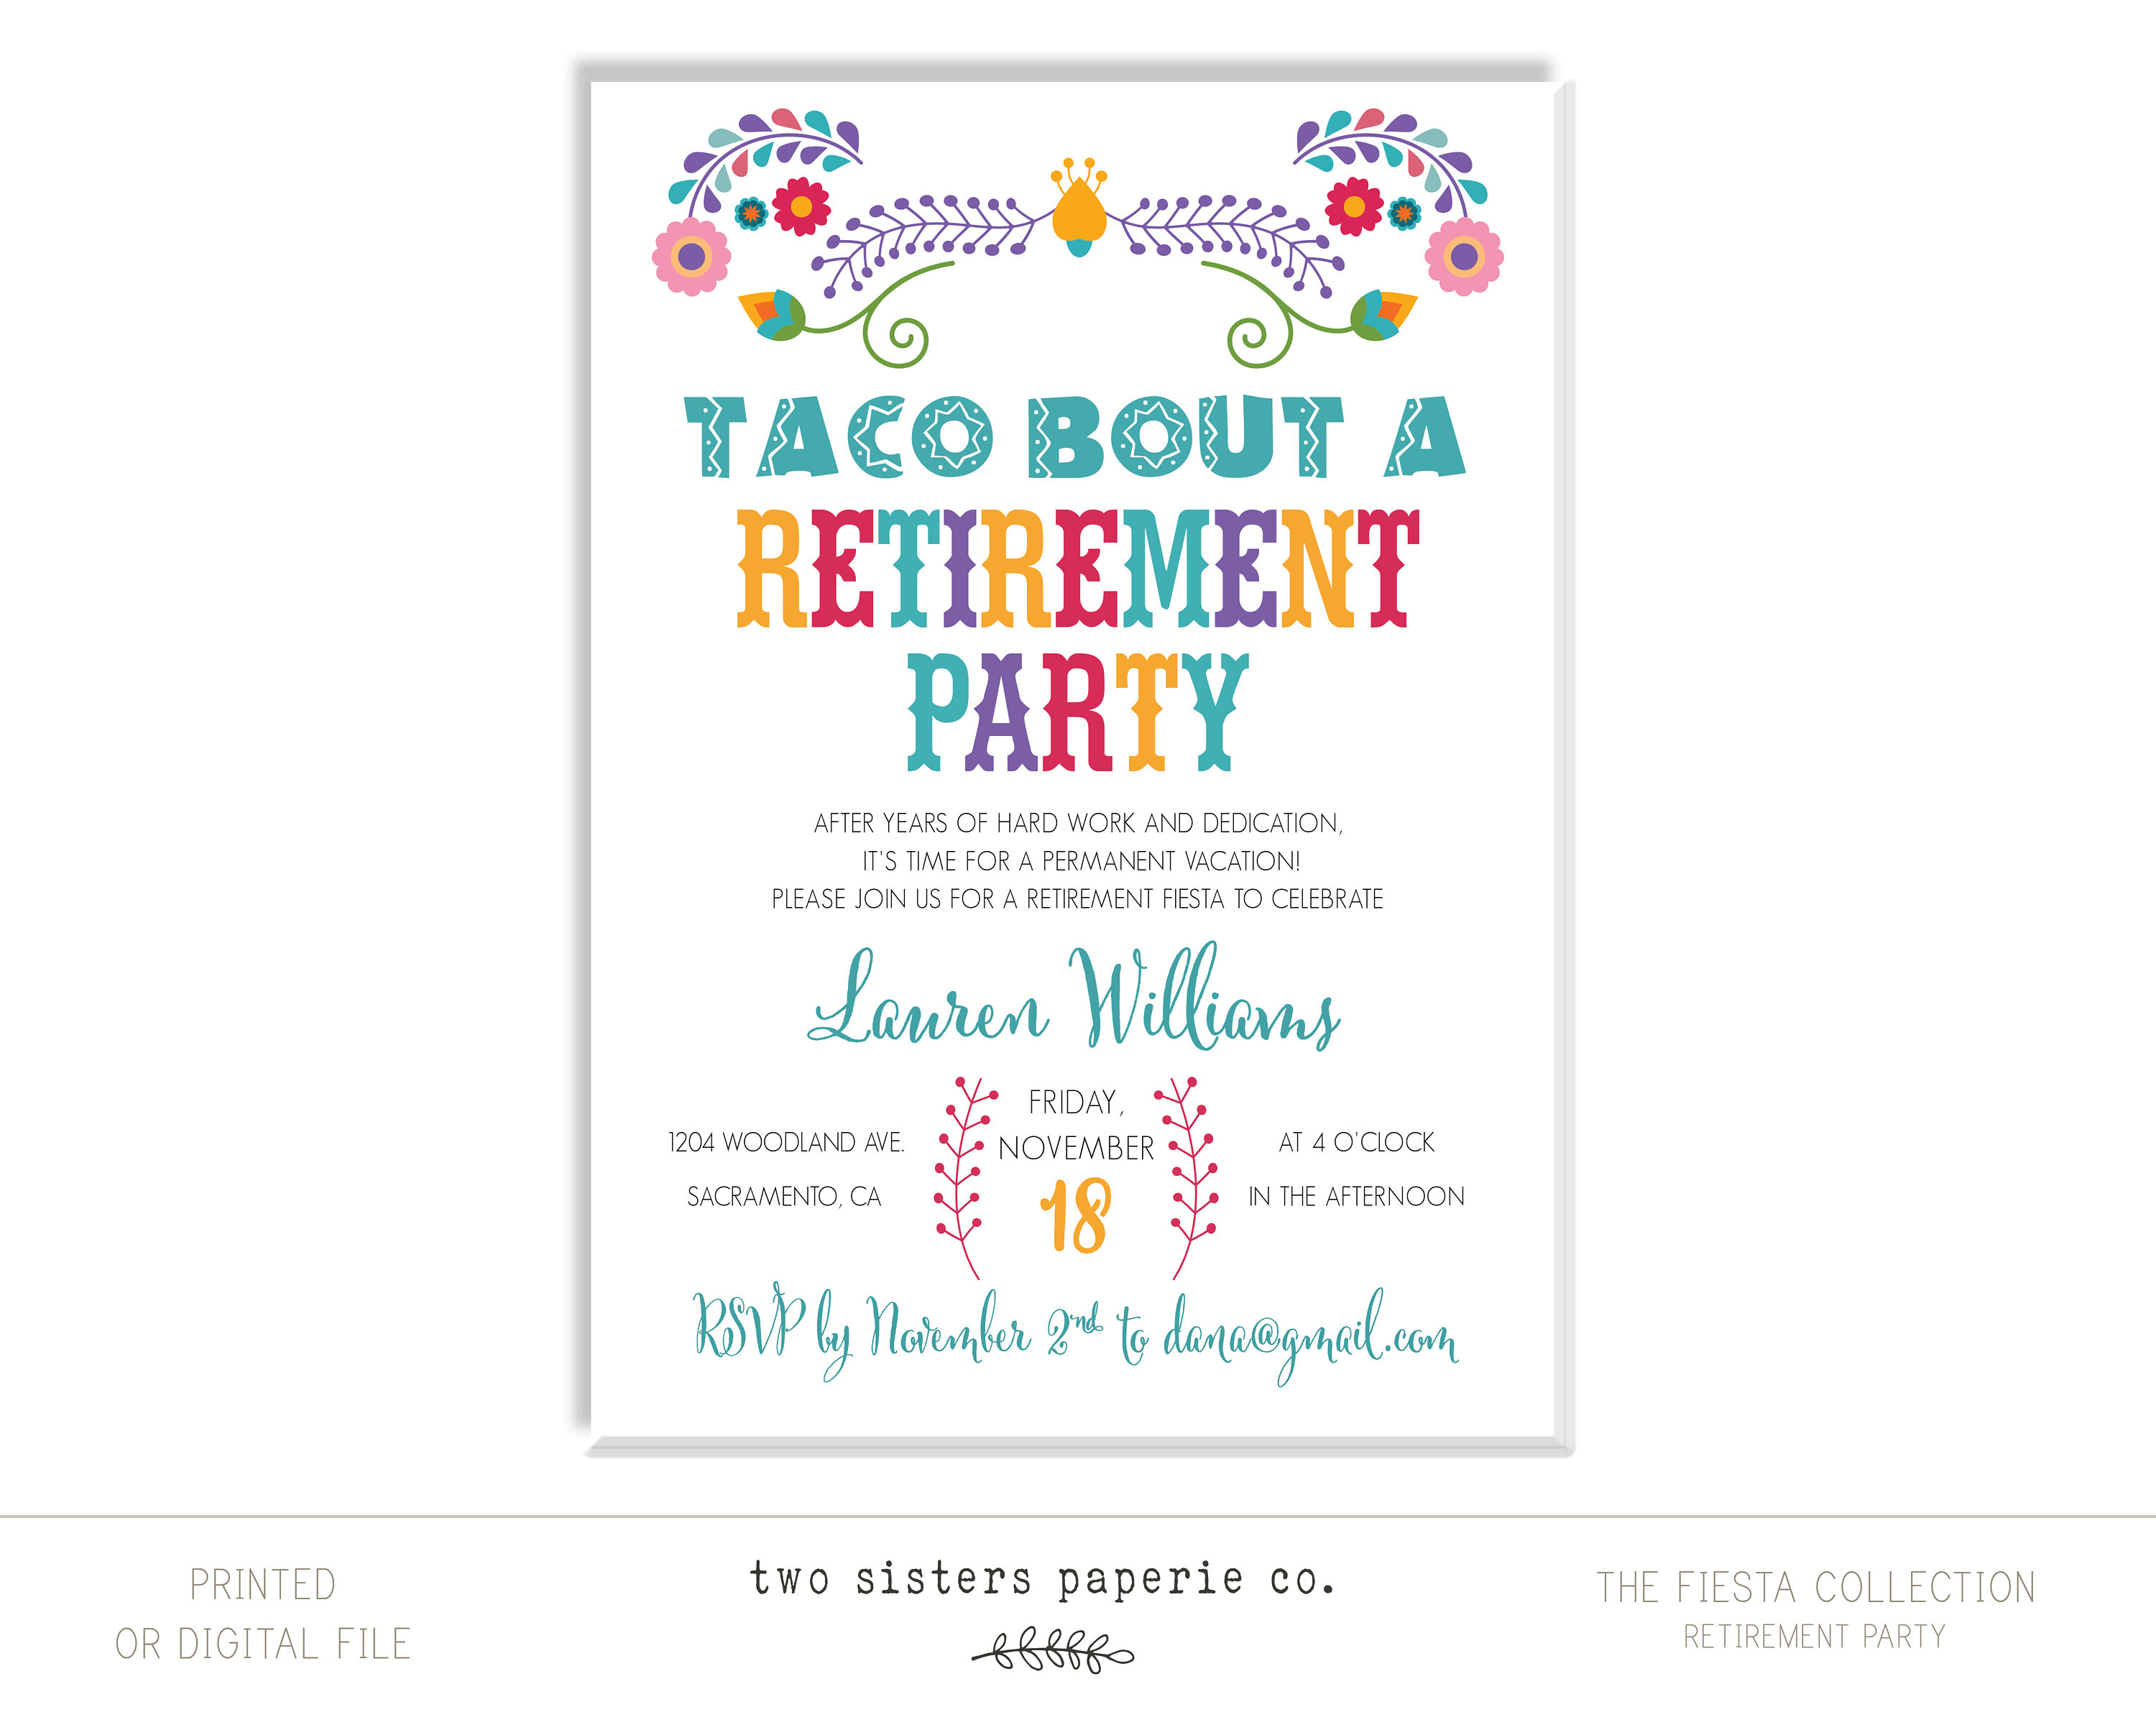 Taco Bout A Retirement Party Invitation Fiesta Collection | Etsy - Printable Dropdown Puzzles